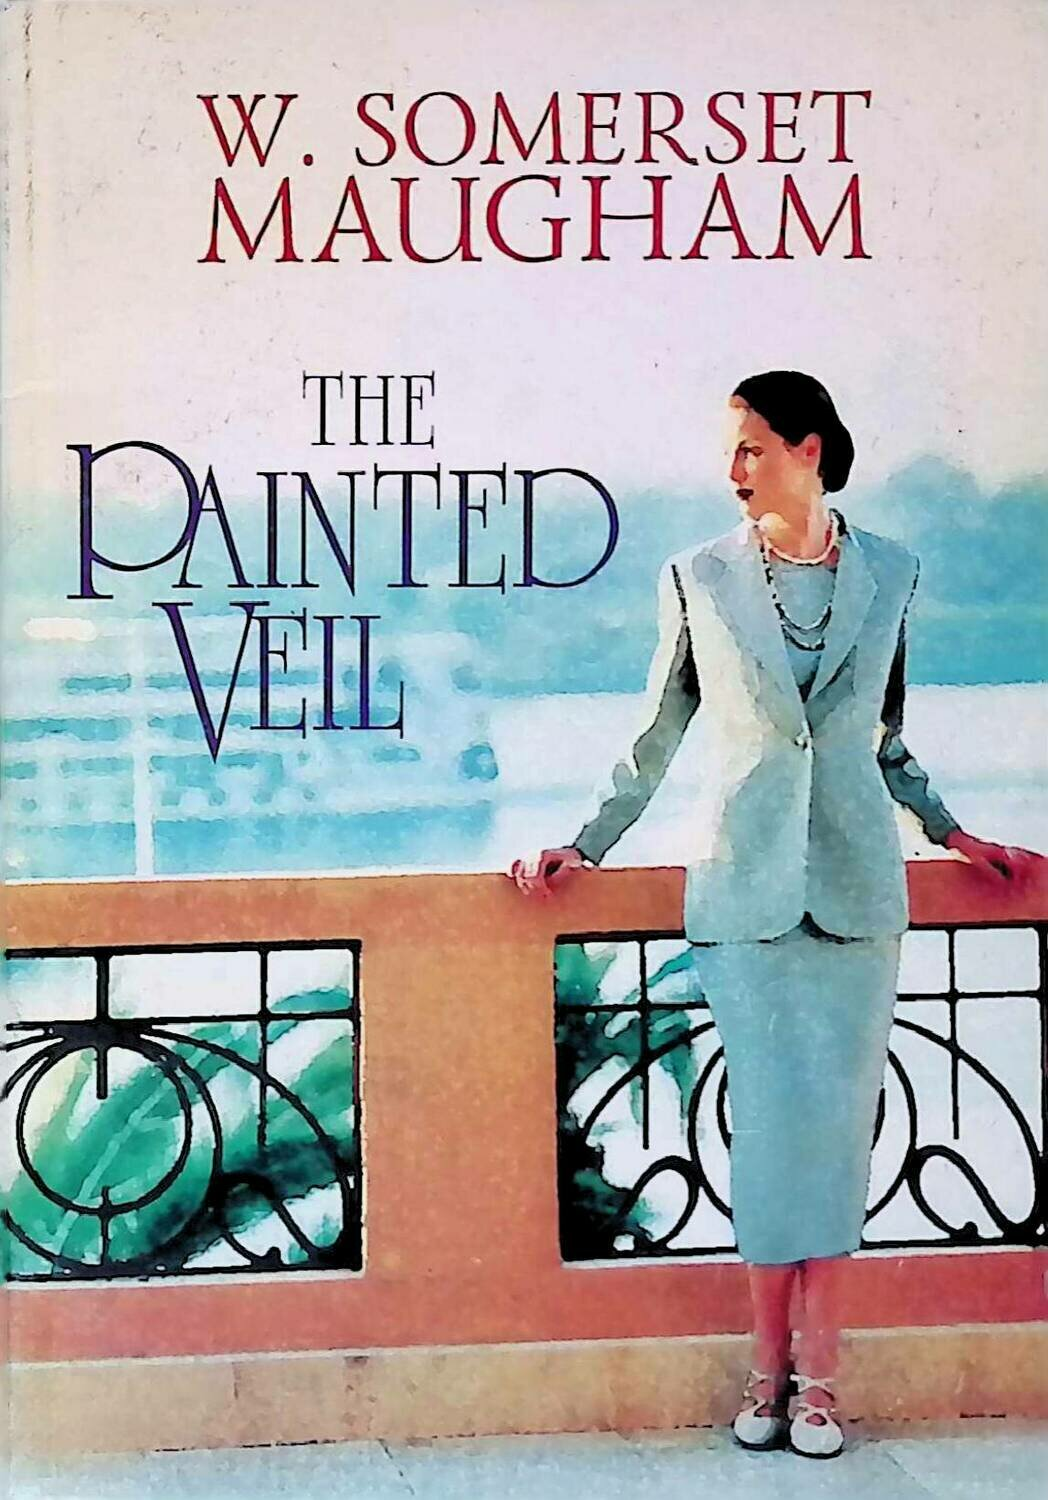 The Painted Veil; W. Somerset Maugham